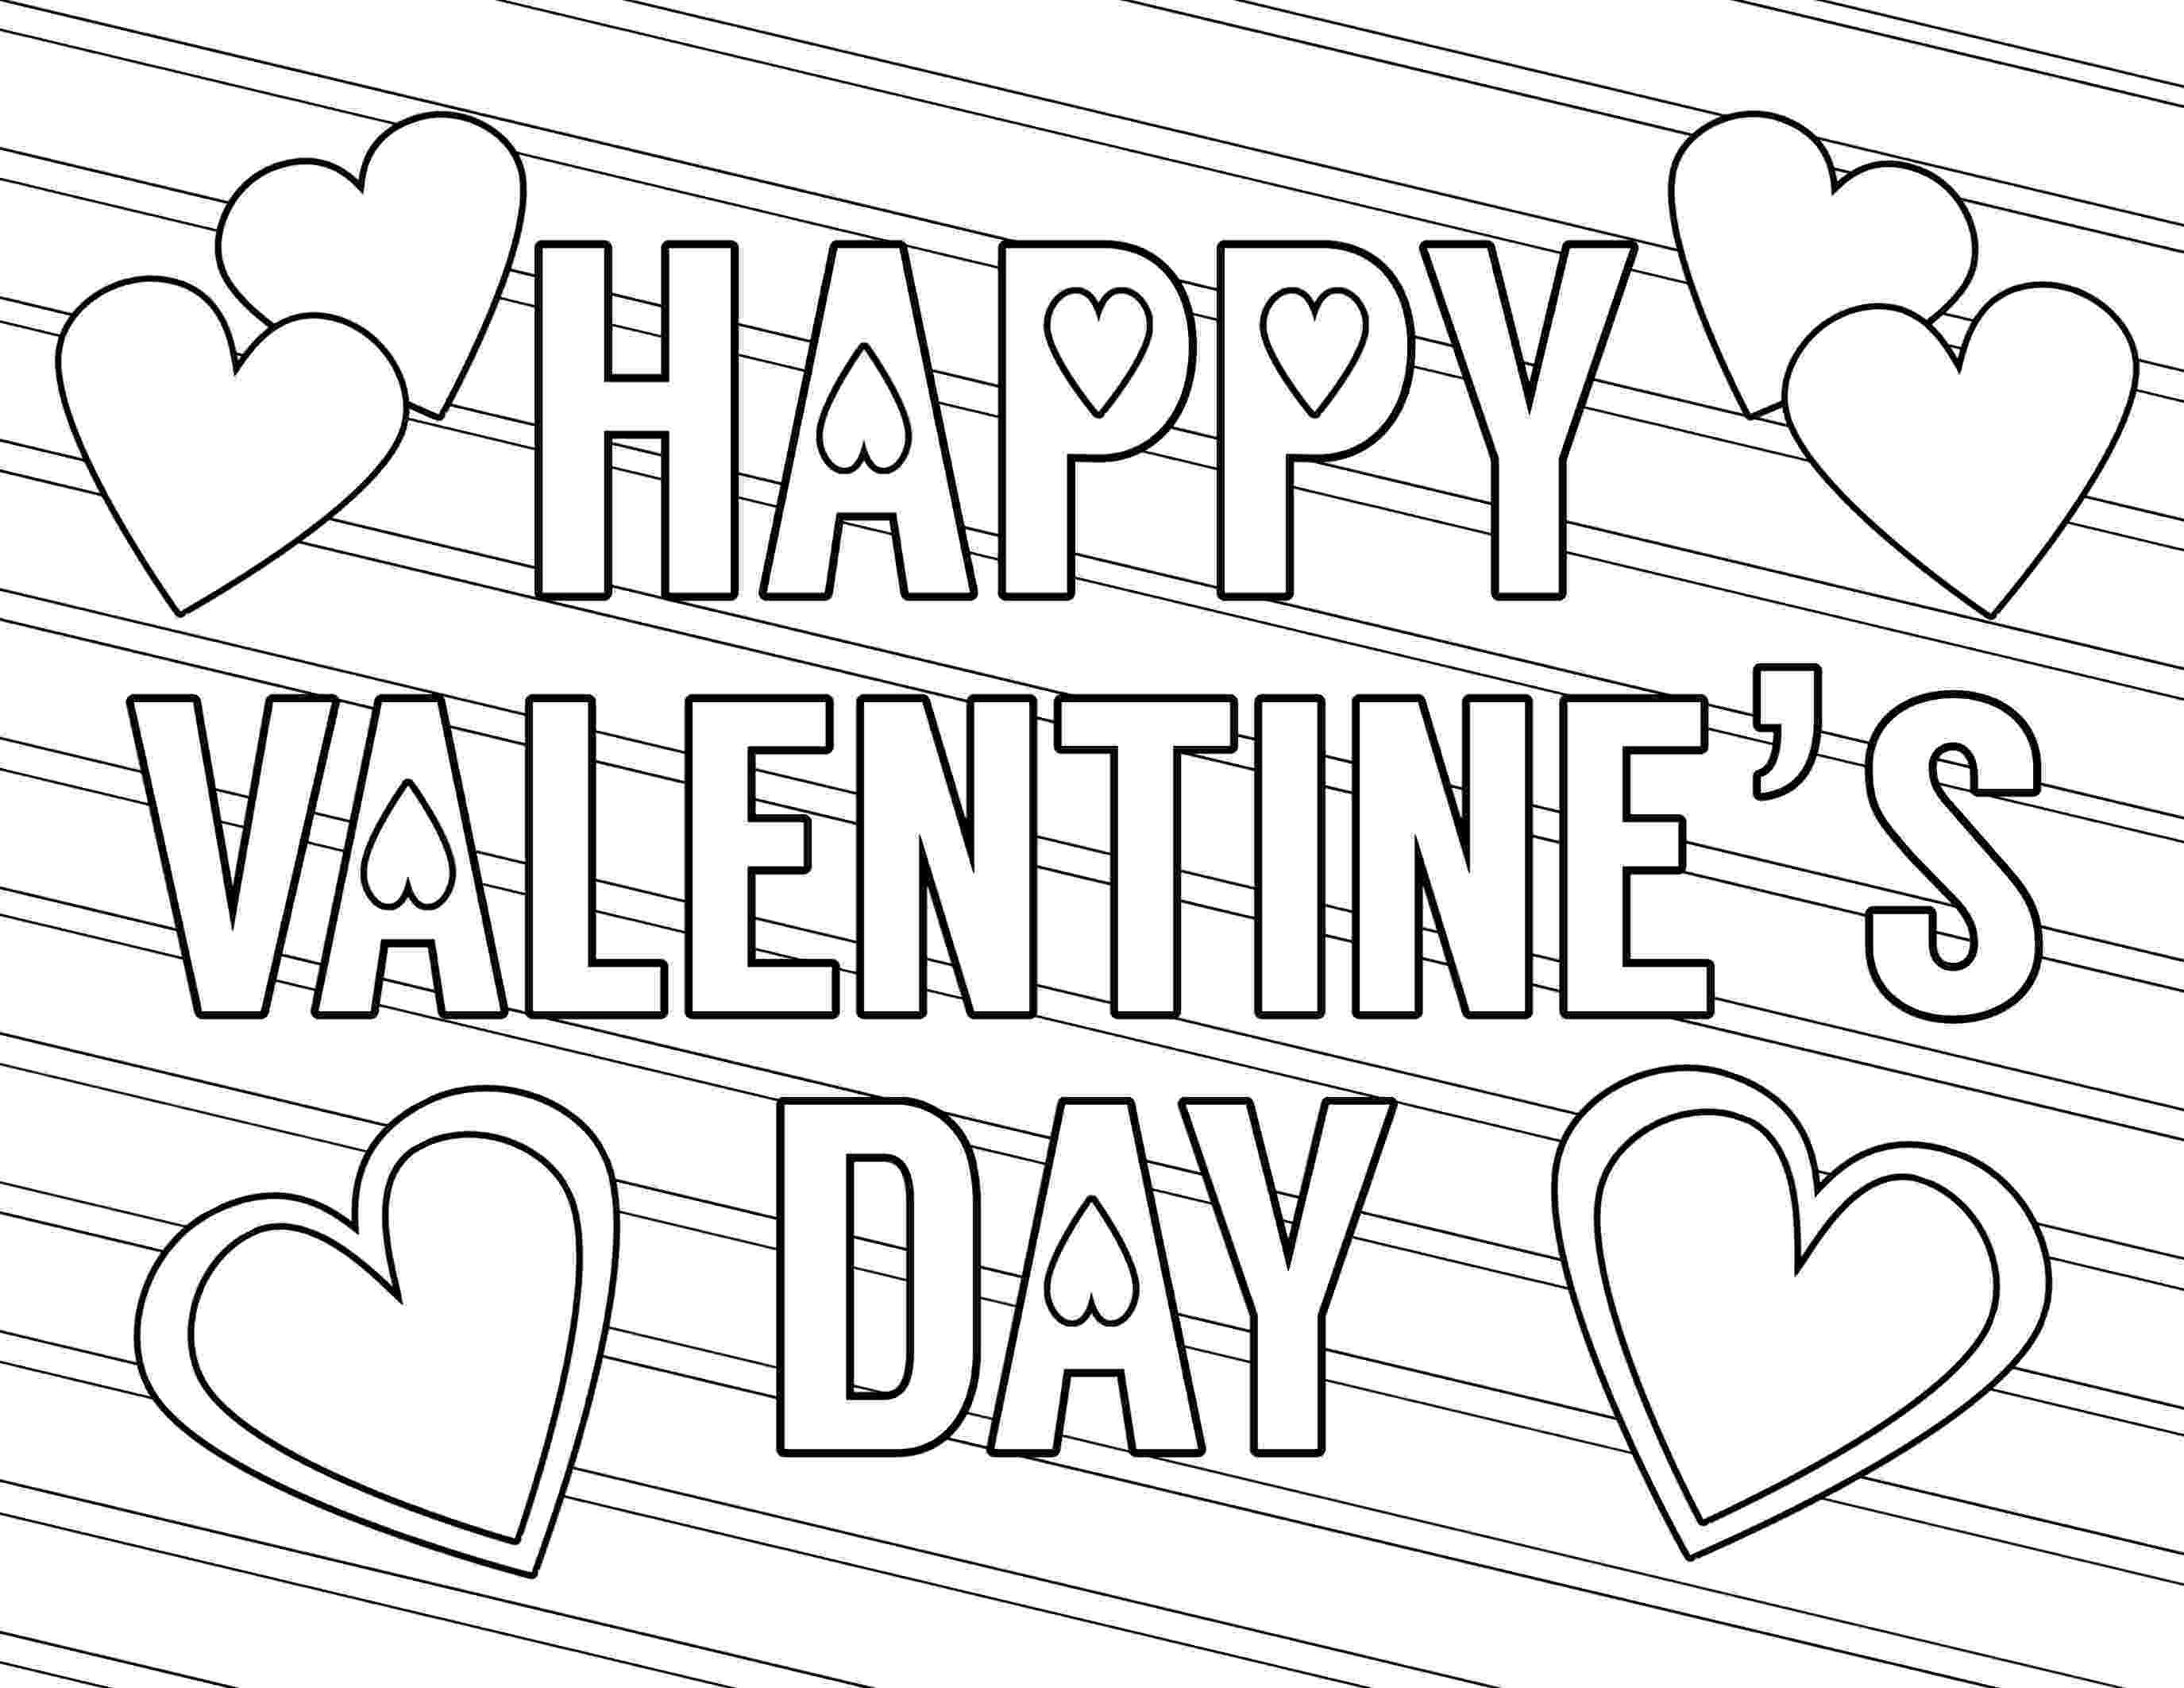 free printable valentines day coloring pages happy valentines day coloring pages best coloring pages valentines free pages day printable coloring